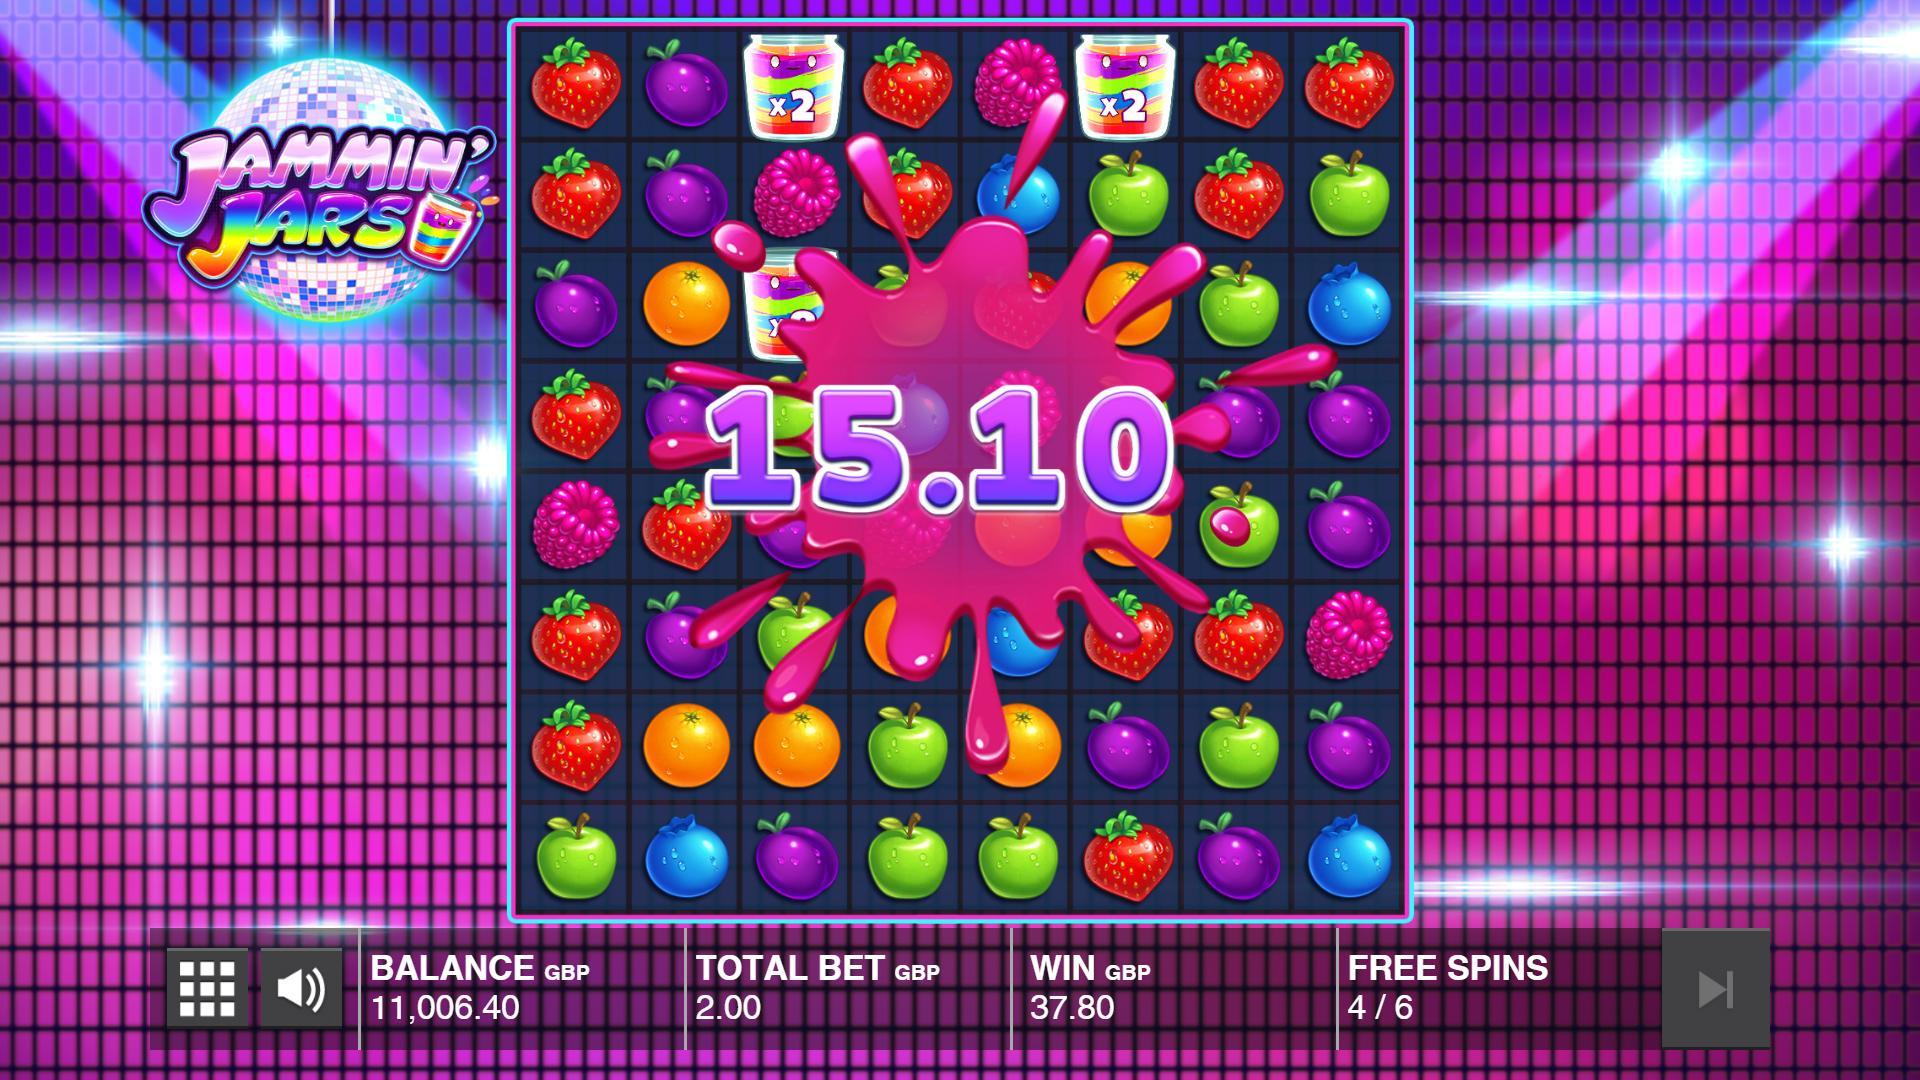 Jammin Jars Free Play In Demo Slot For Android Apk Download